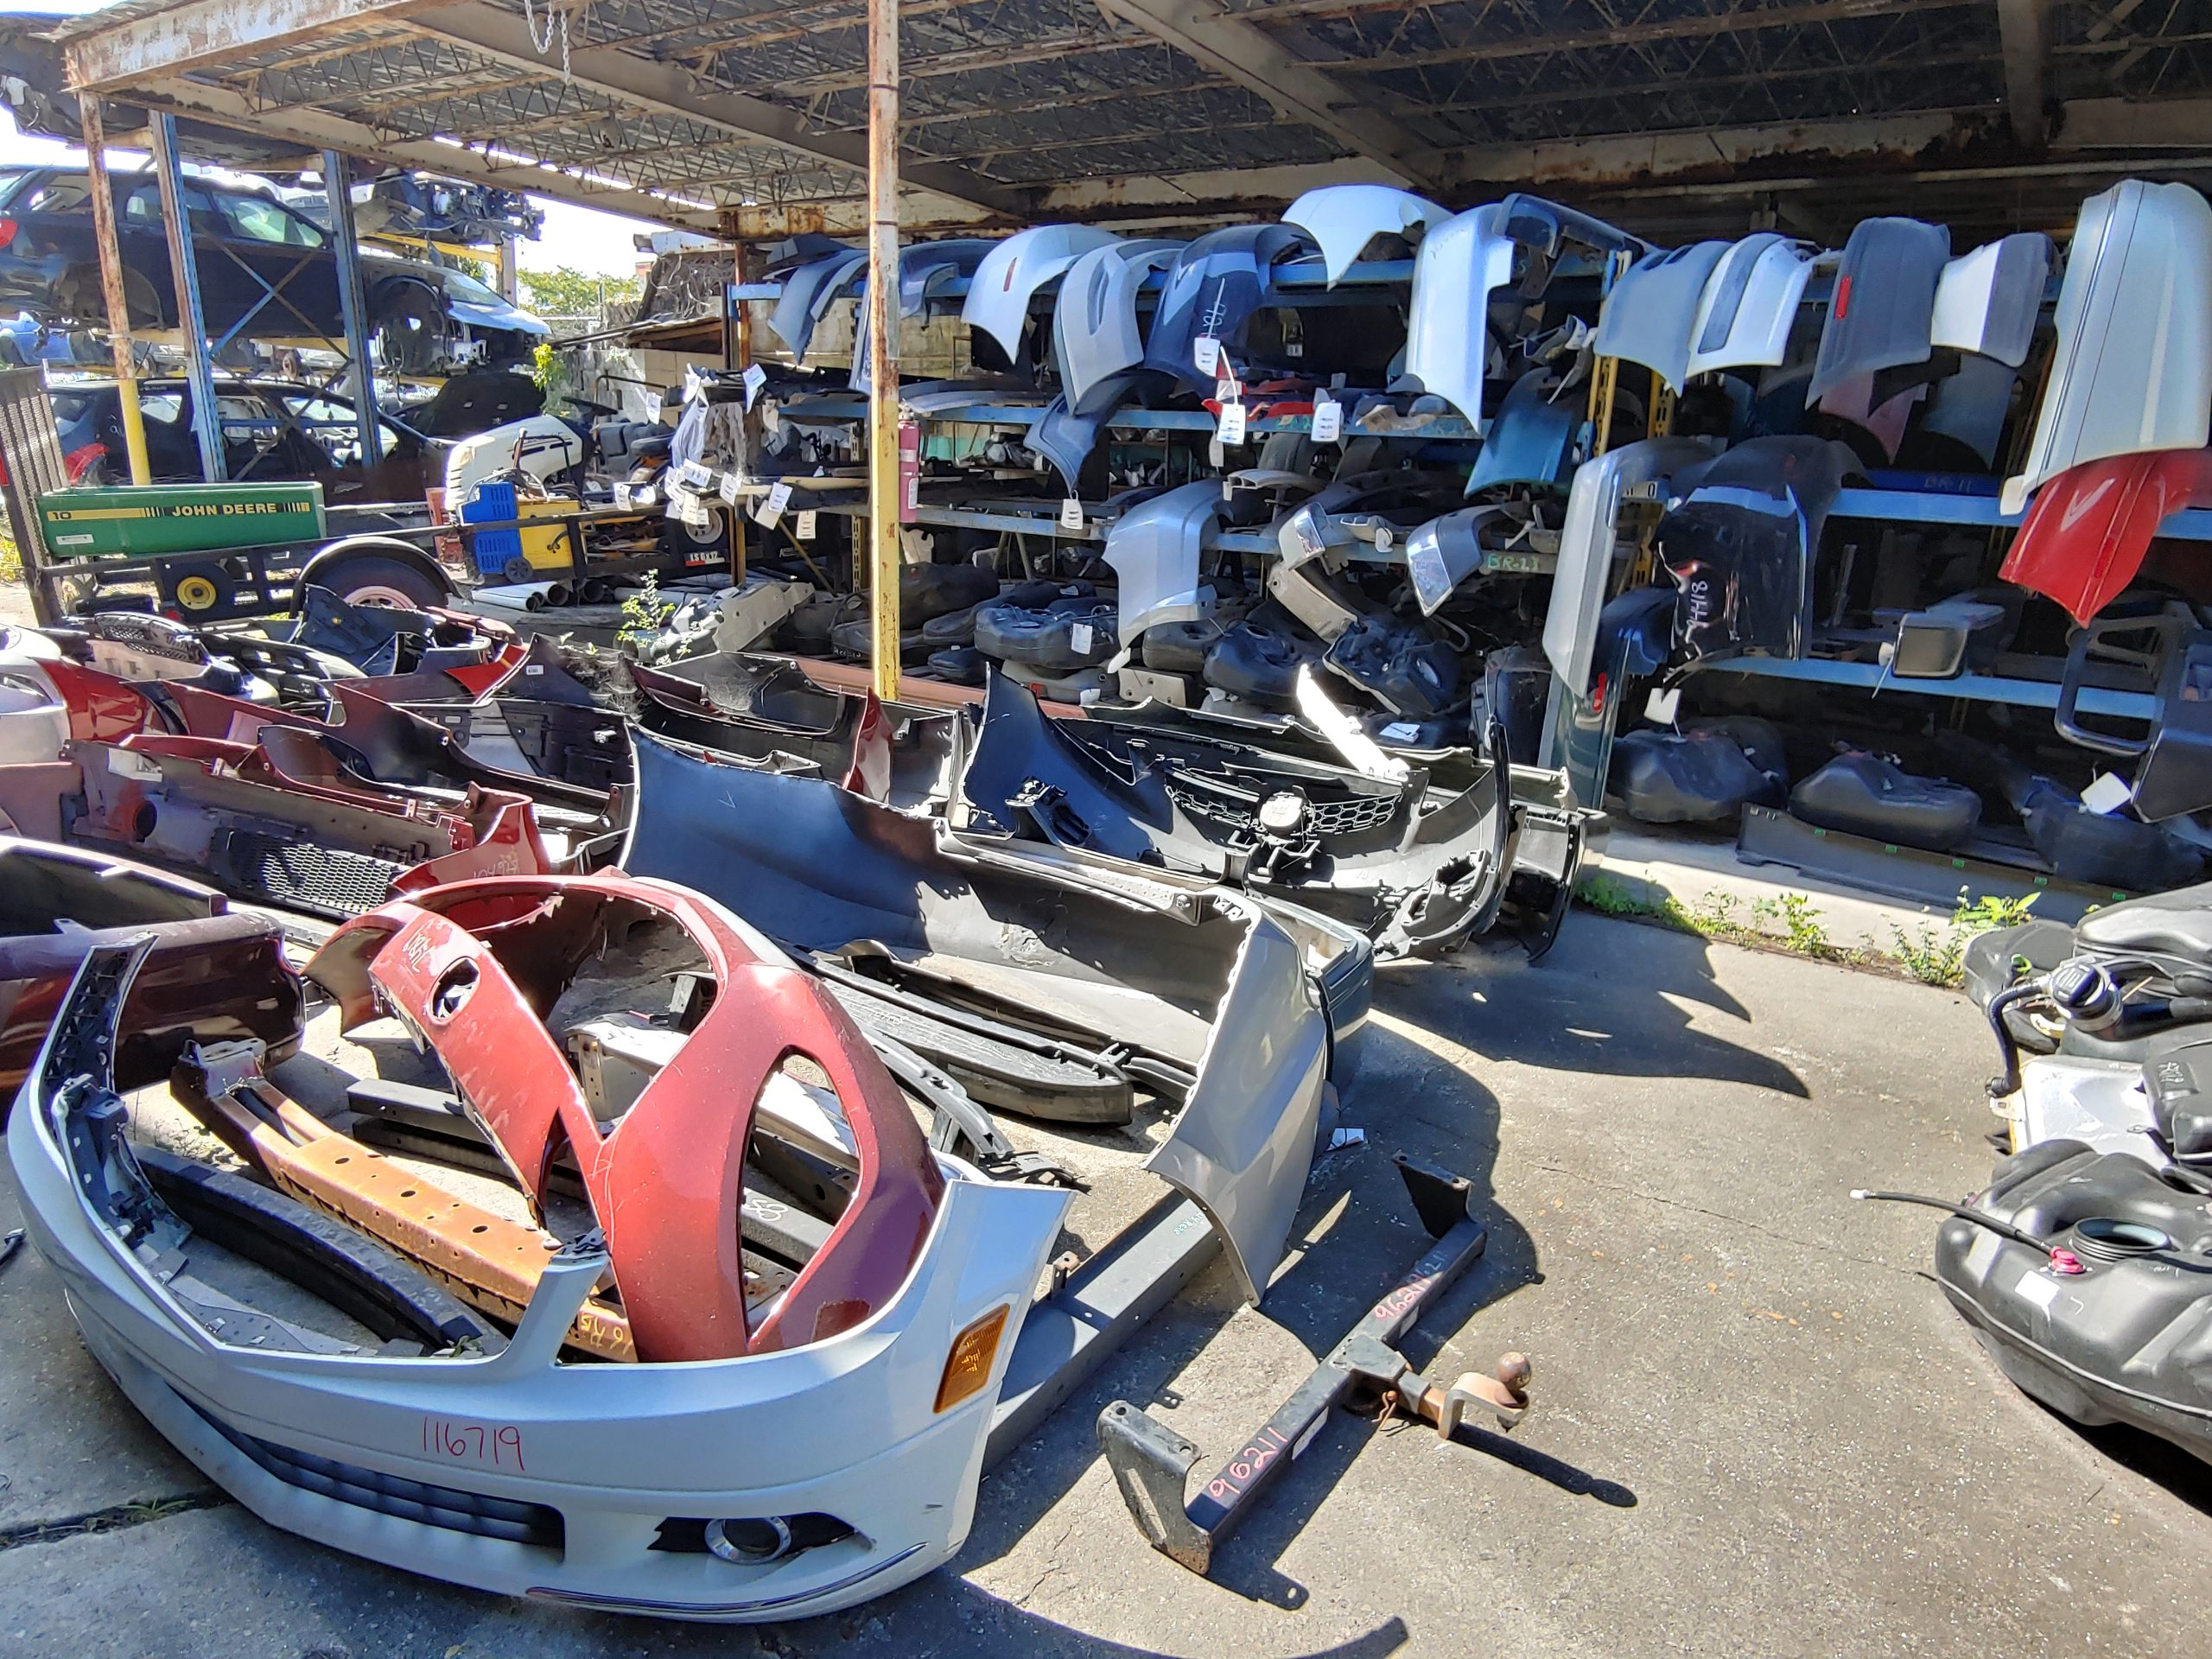 Junk Yards Near Miami Dade County Quality Used Car Parts Store Gardner Auto Parts